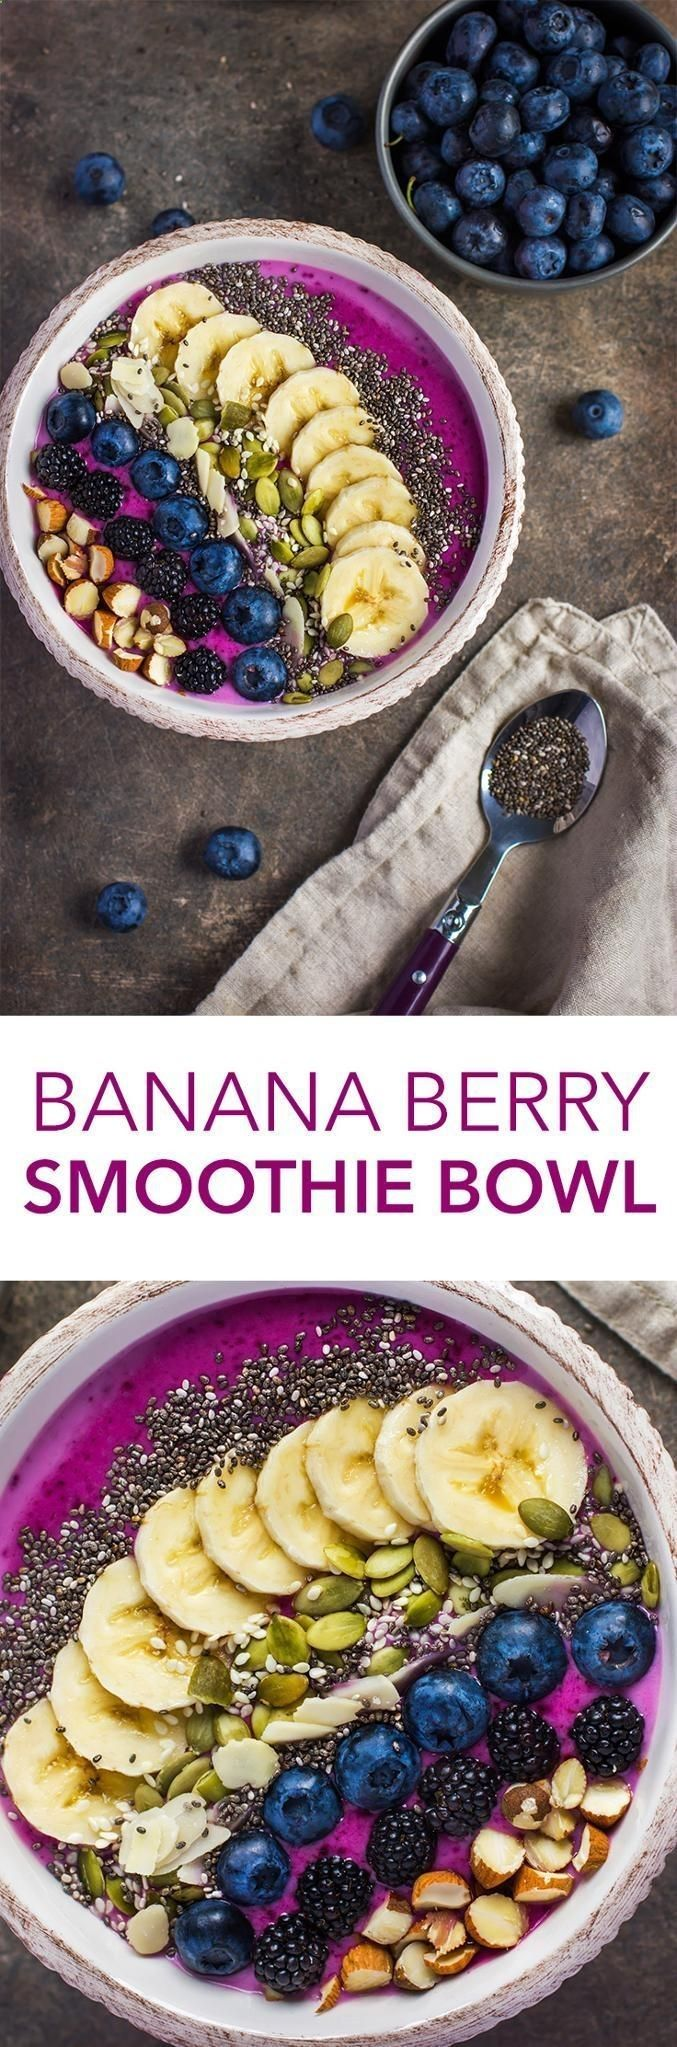 Eat Stop Eat To Loss Weight - With blueberries, blackberries, bananas, chia seeds, and more, this smoothie bowl is just what you need to power up for the day. Click through for the recipe! - In Just One Day This Simple Strategy Frees You From Complicated Diet Rules - And Eliminates Rebound Weight Gain